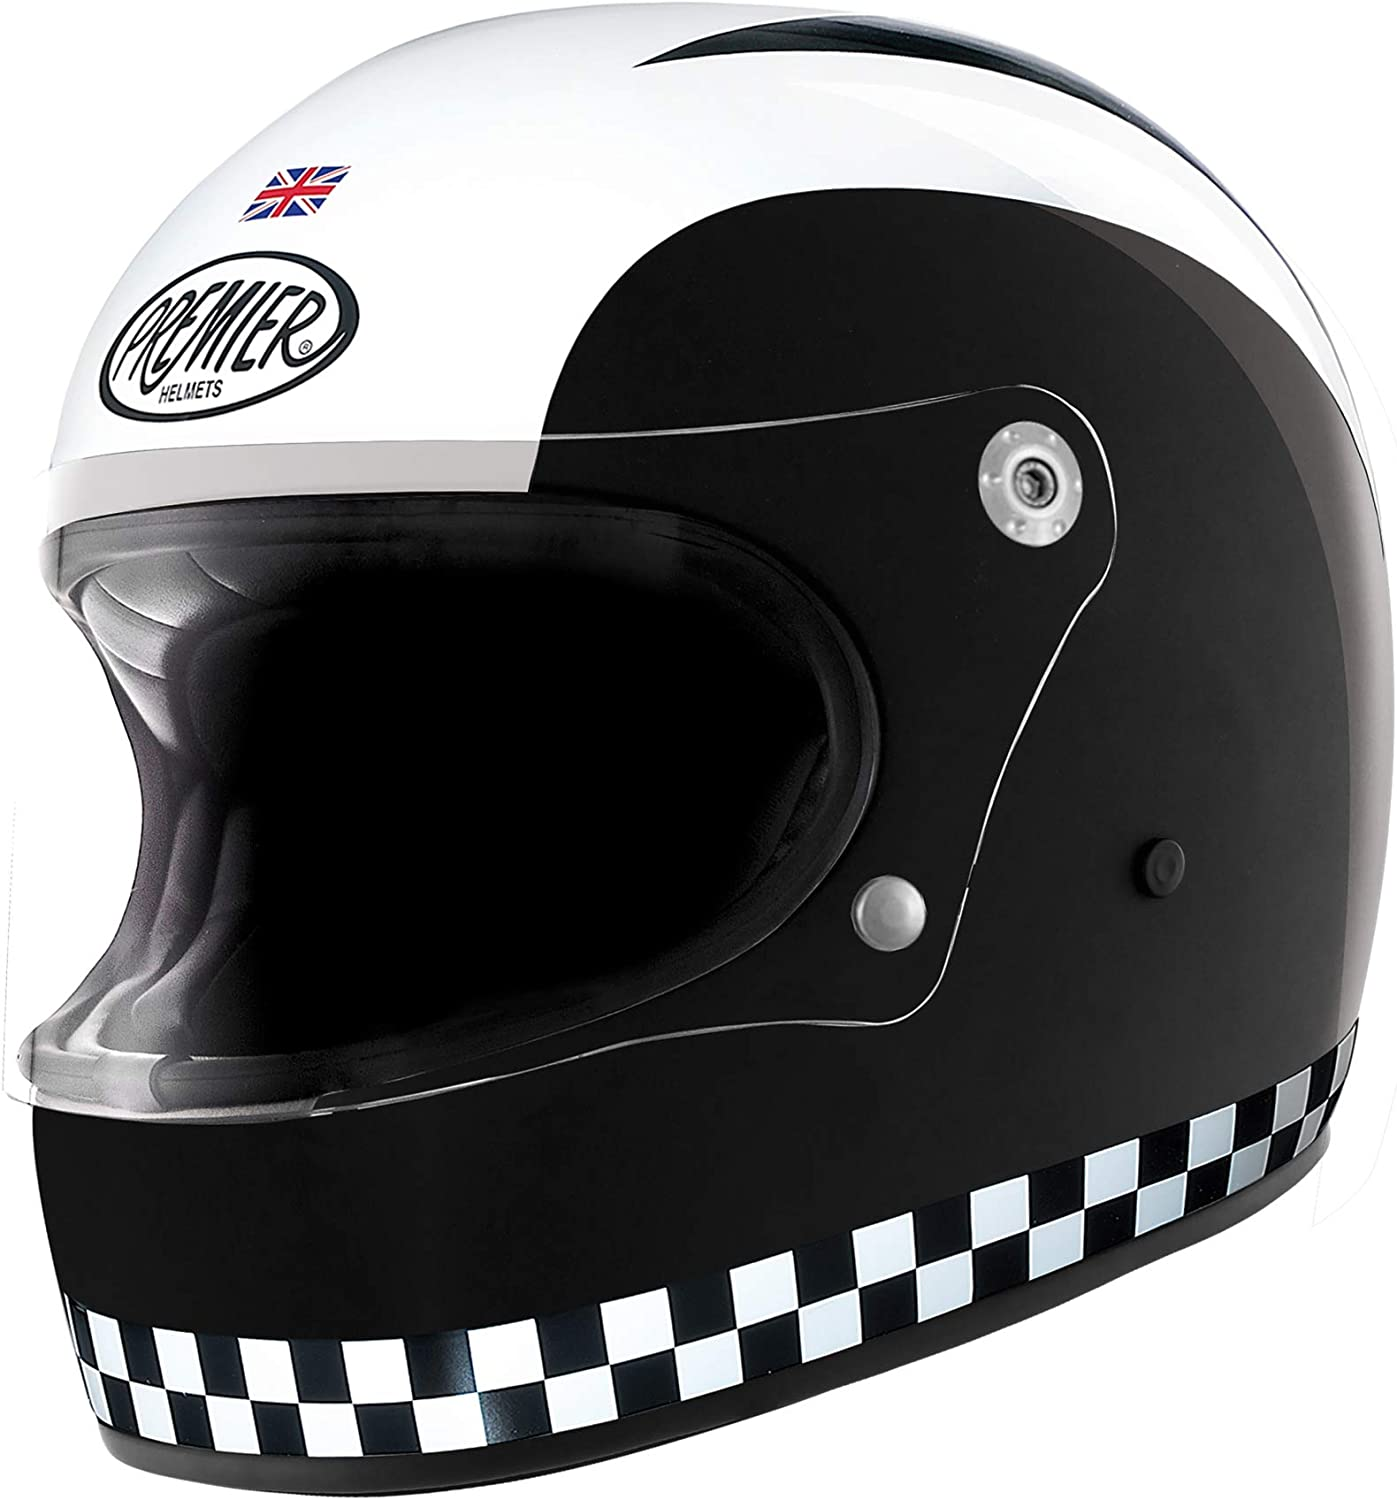 Casco Premier retro